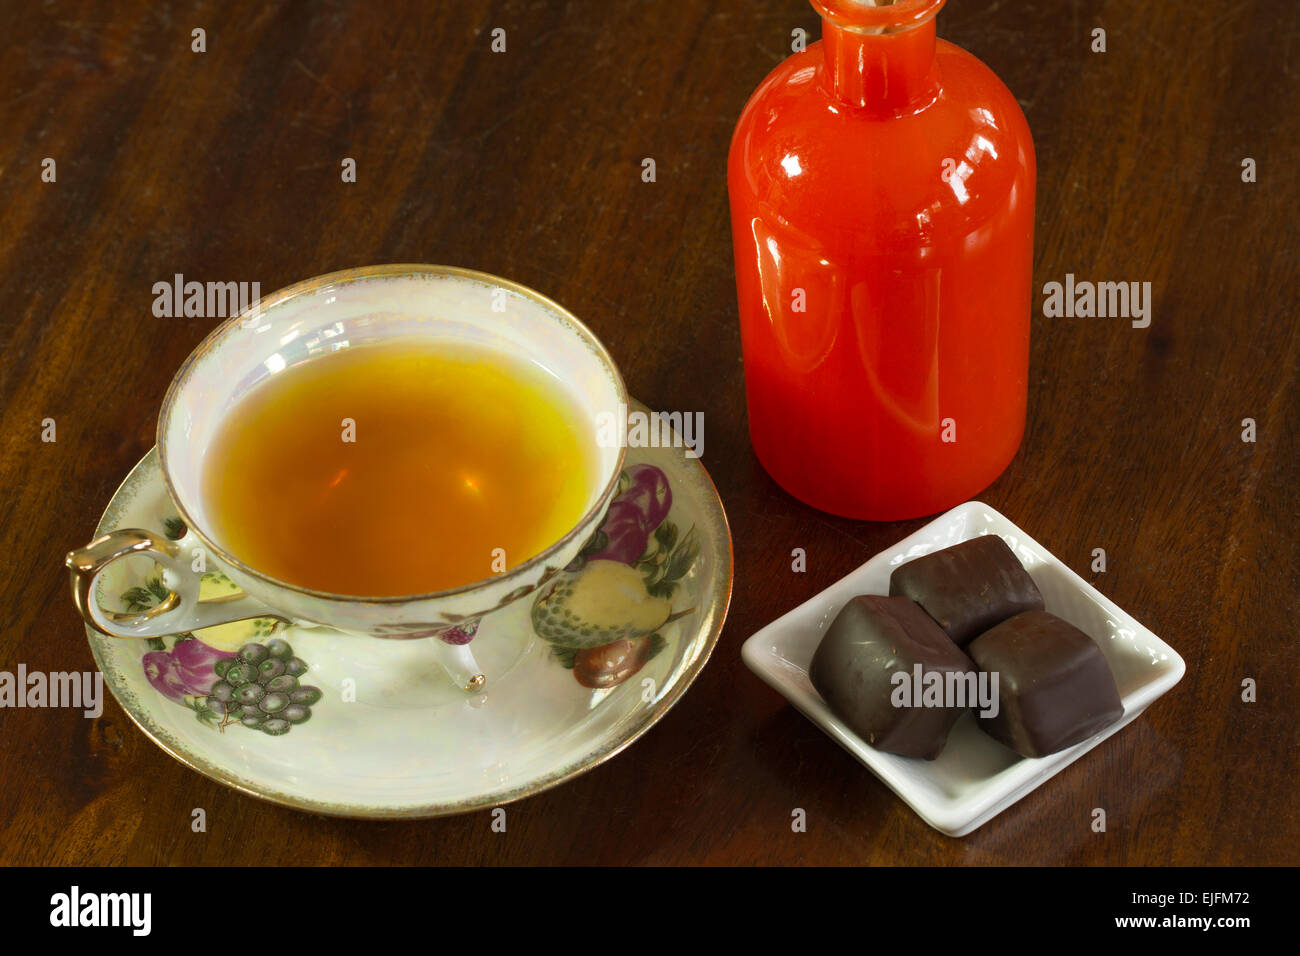 Tea served with chocolate truffles and aroma therapy - Stock Image